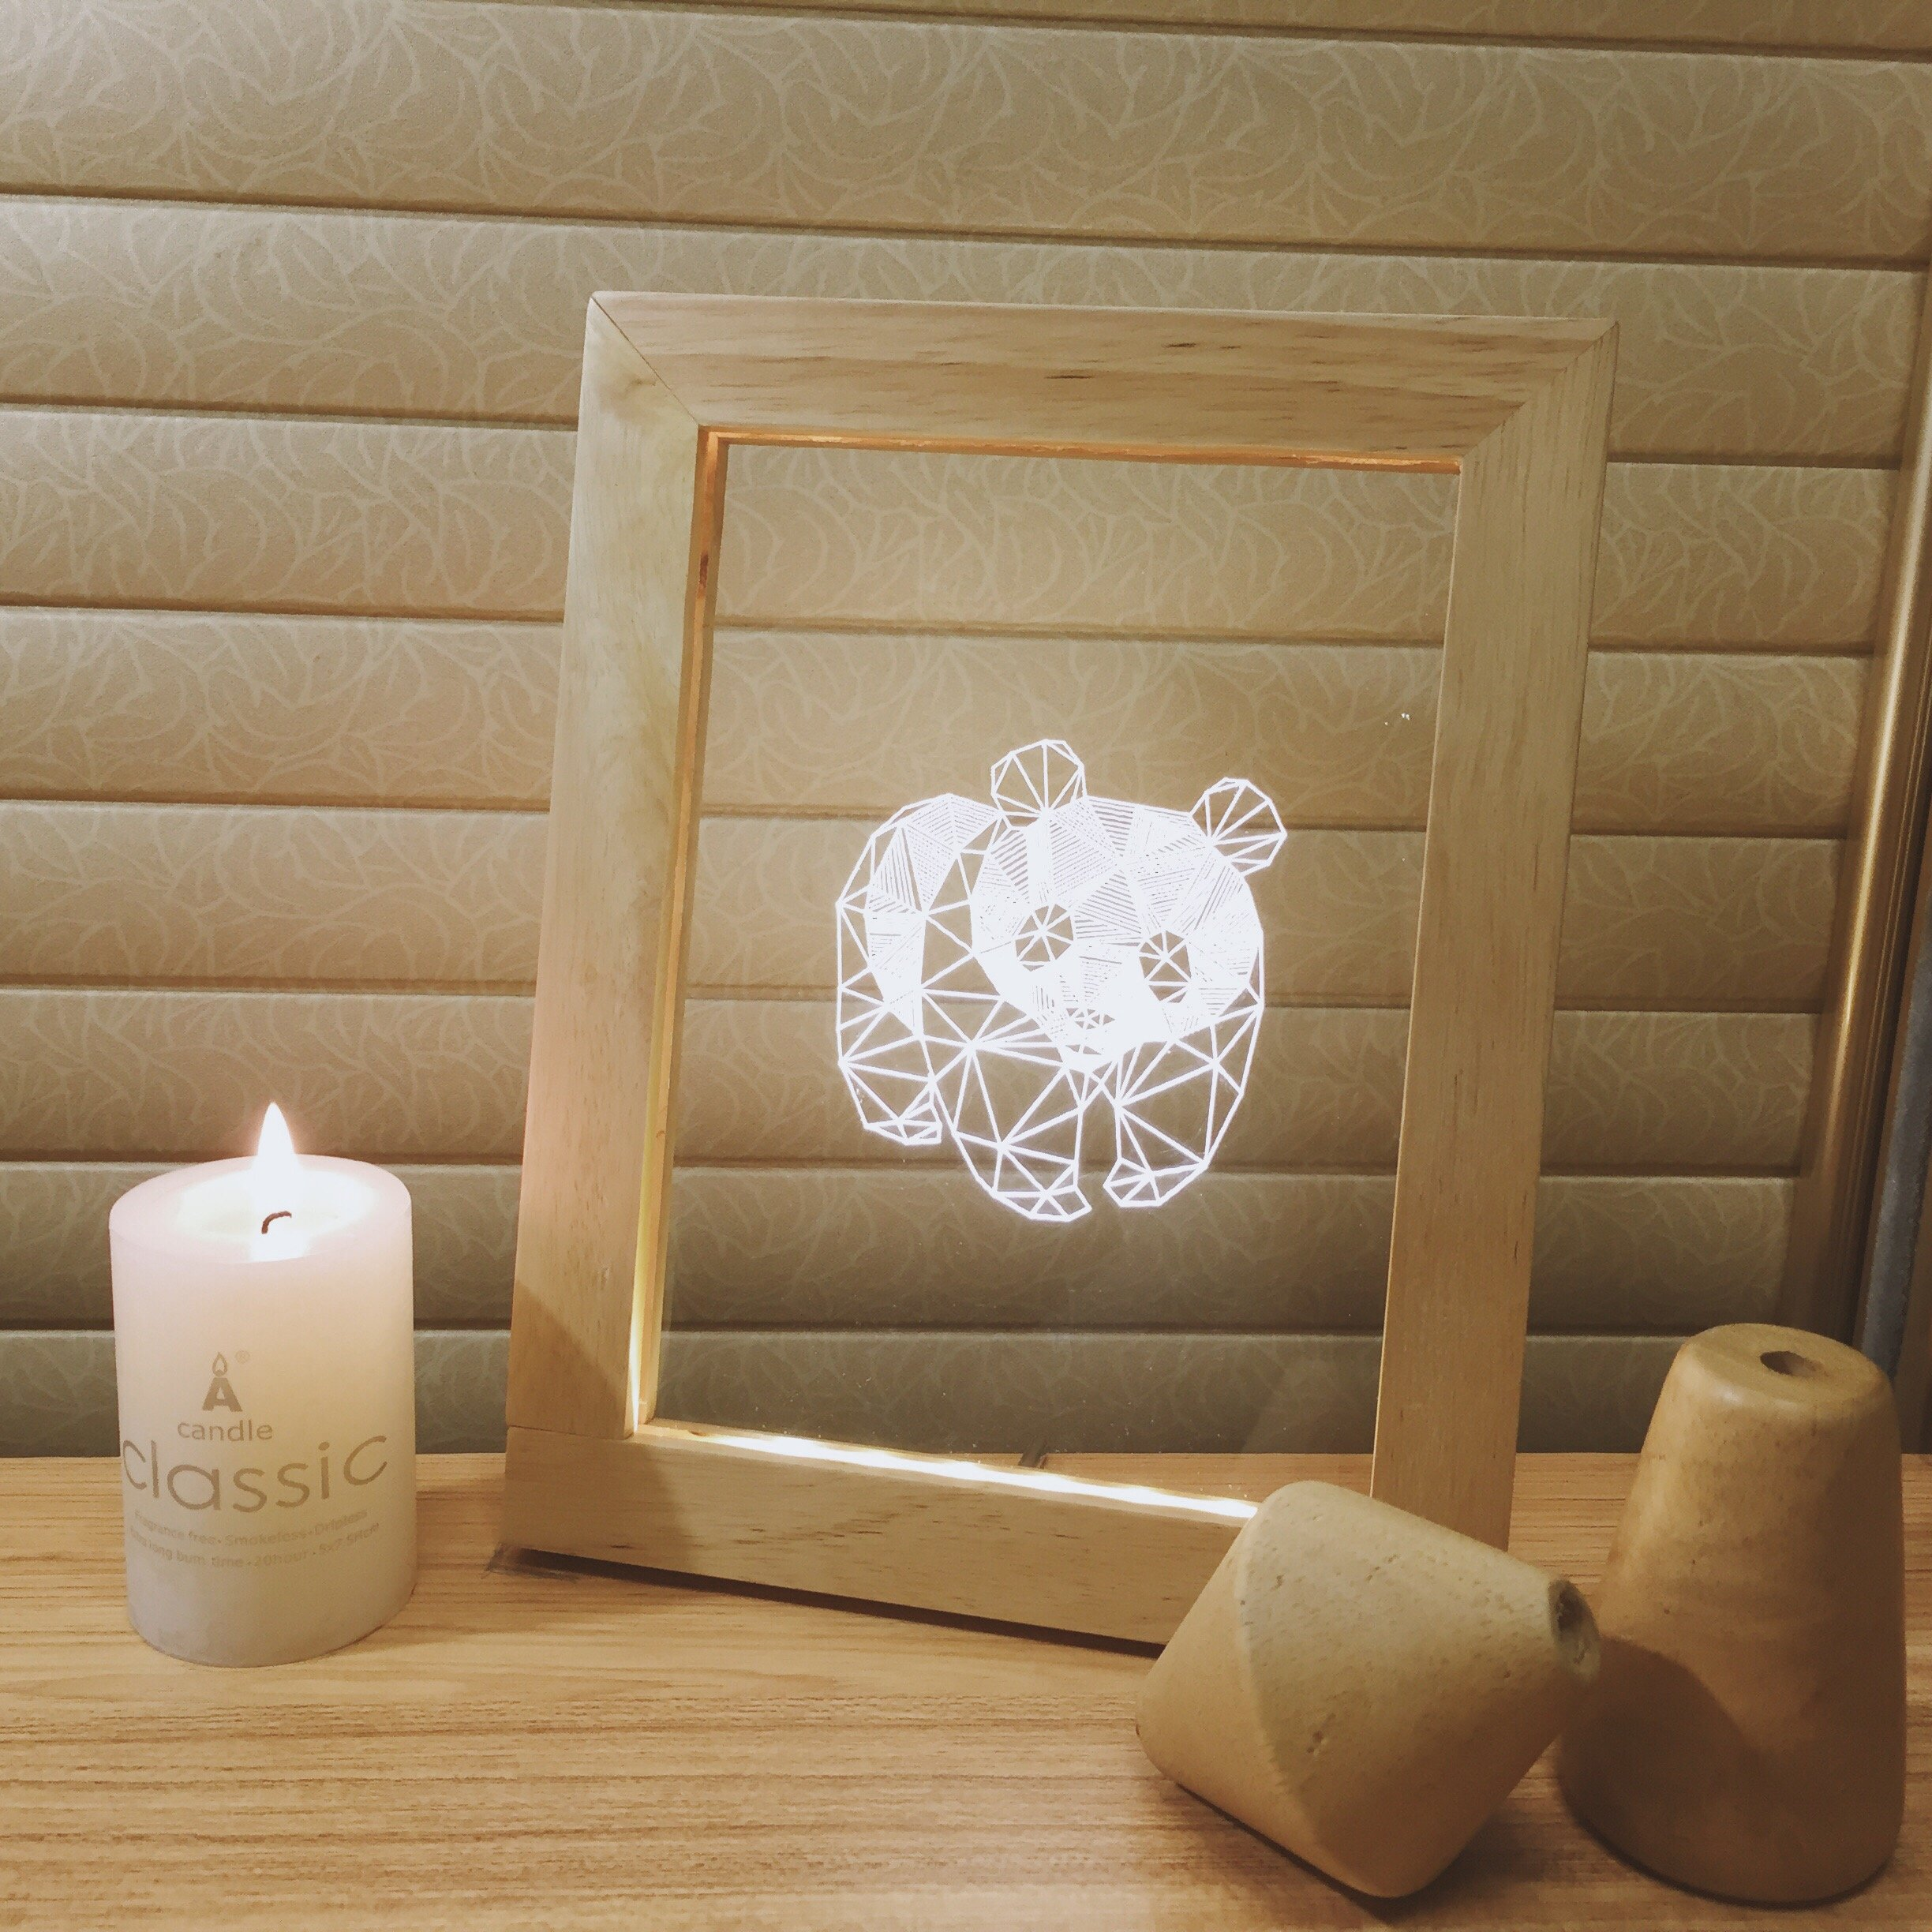 Wood Frame Night Lights, Fortune Cat Crane Panda Desk Lamp for Bedroom Living Room, Romantic Art Night Light for Kids and Adults, Decorate Holiday Party Atmosphere, 7.3x9.3x0.8 inches (Panda)